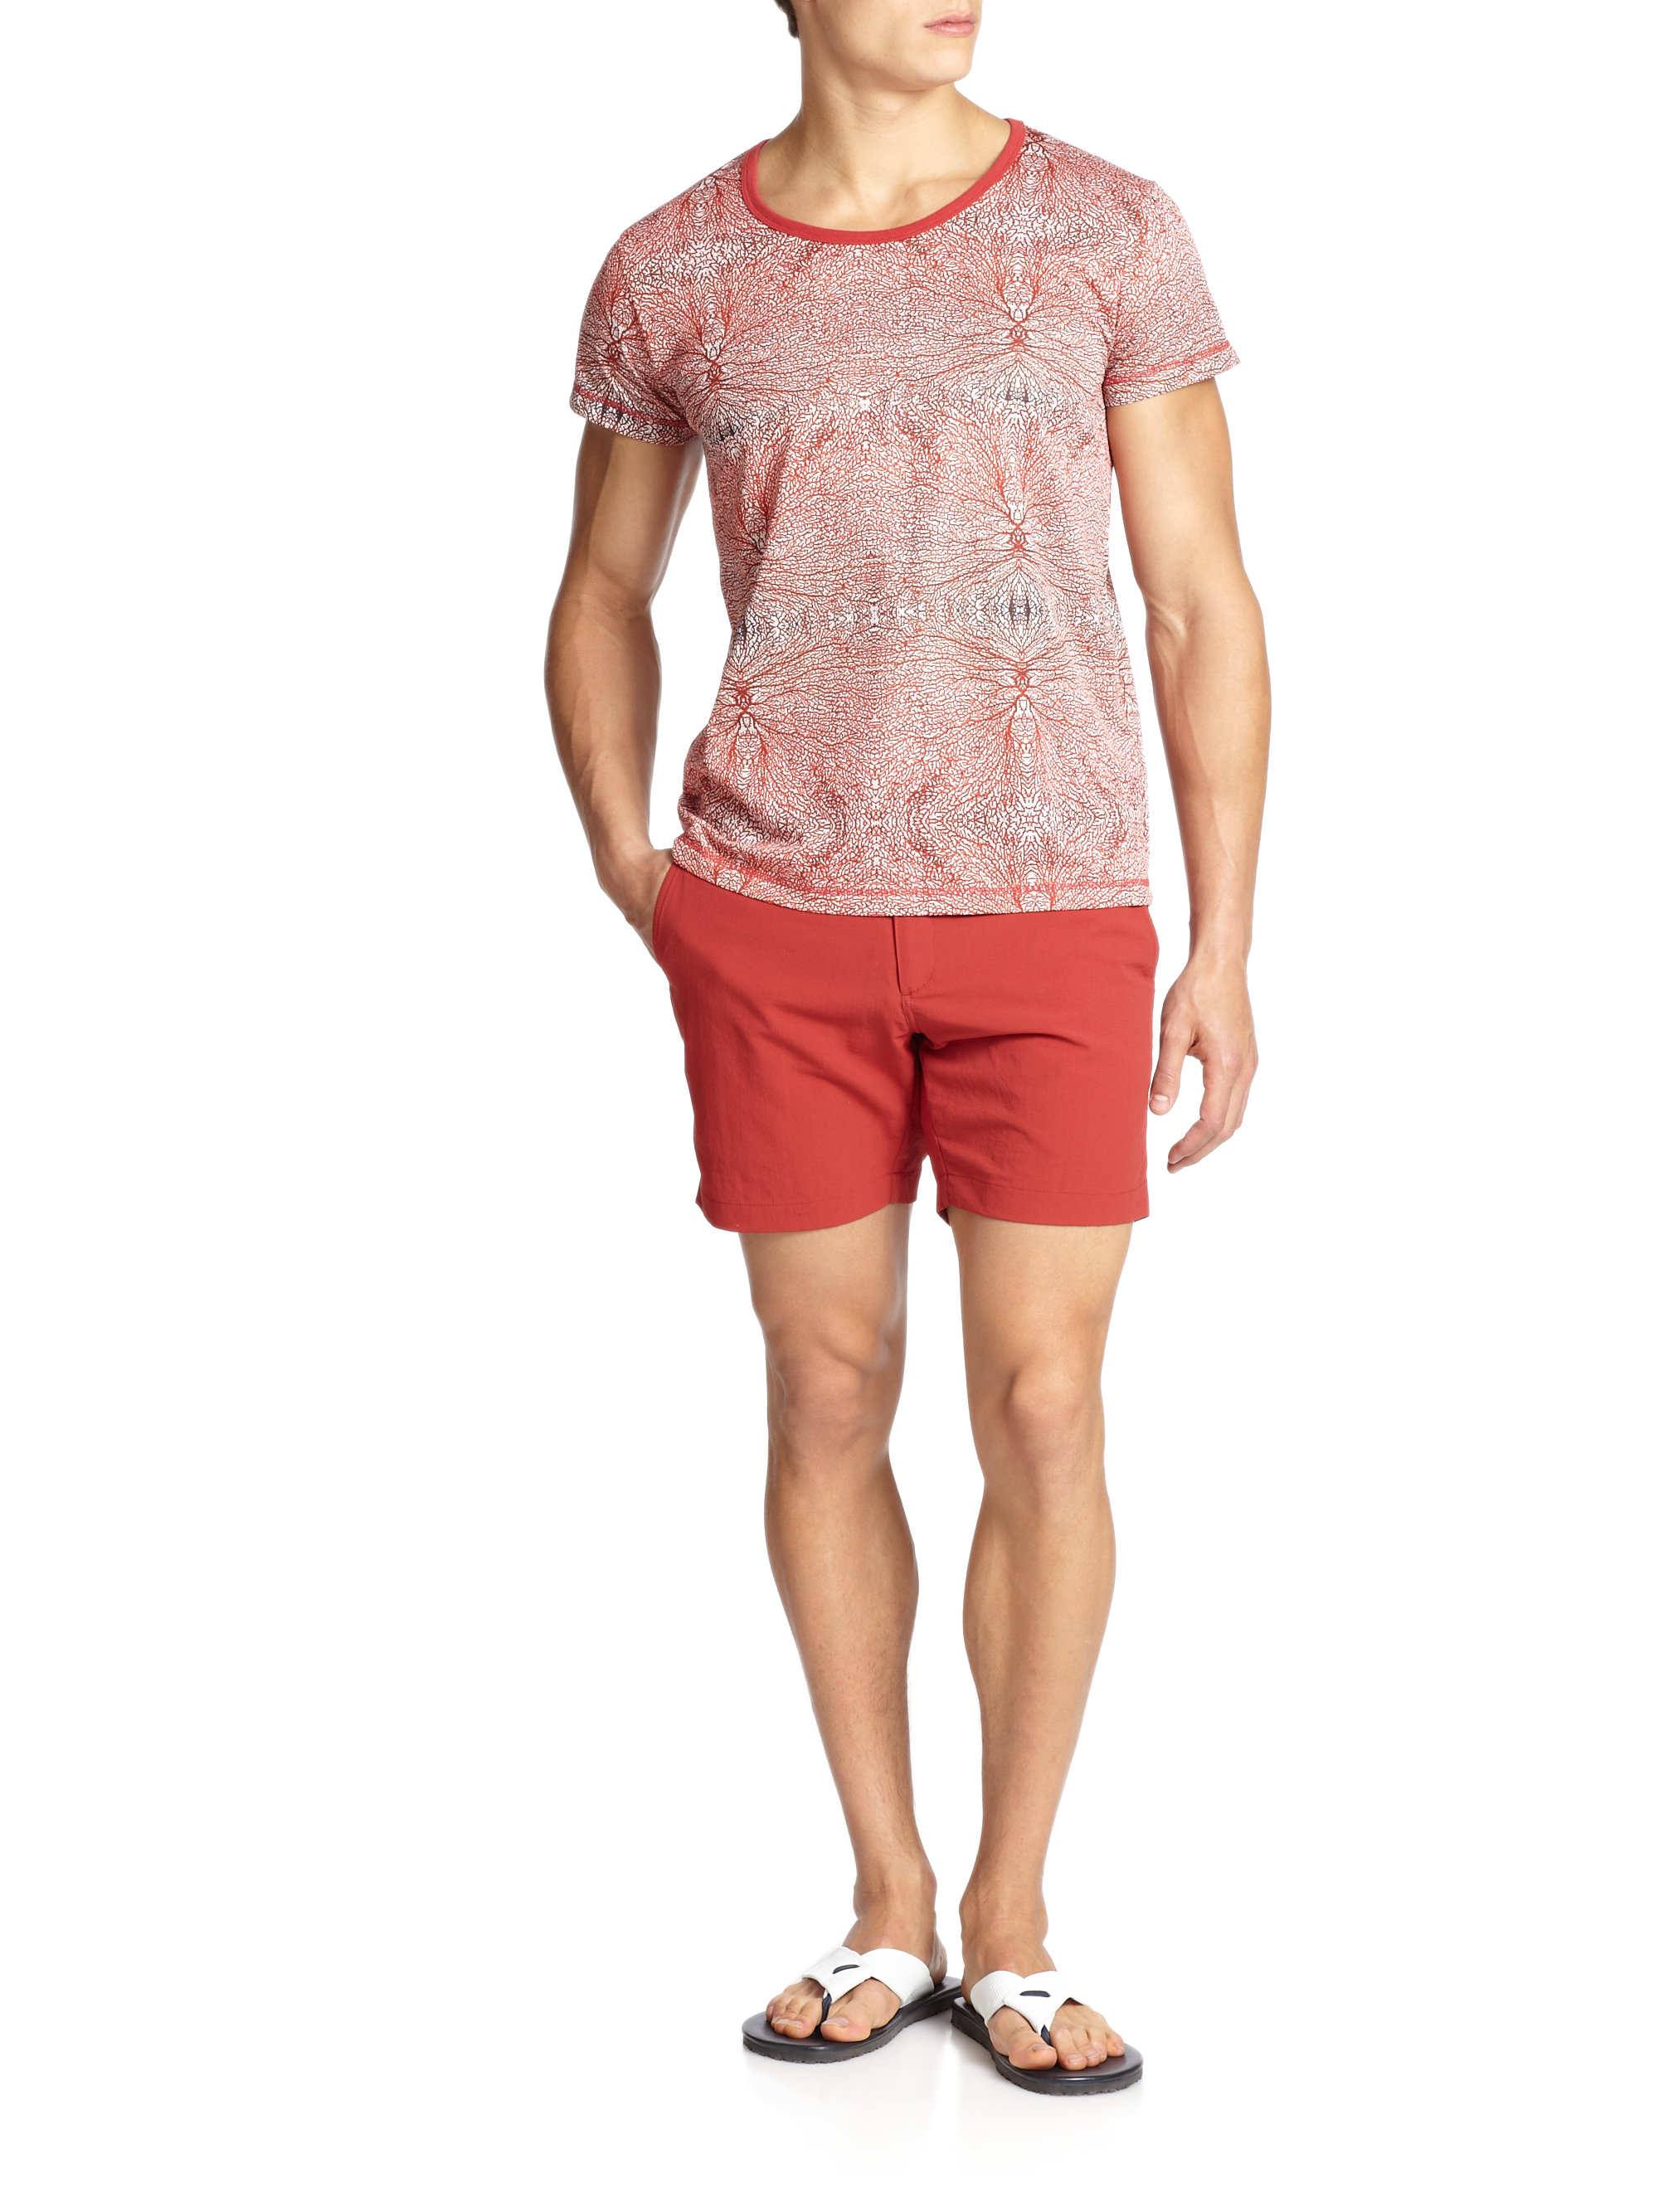 monsieur madone abstract patterned tee in red for men lyst. Black Bedroom Furniture Sets. Home Design Ideas